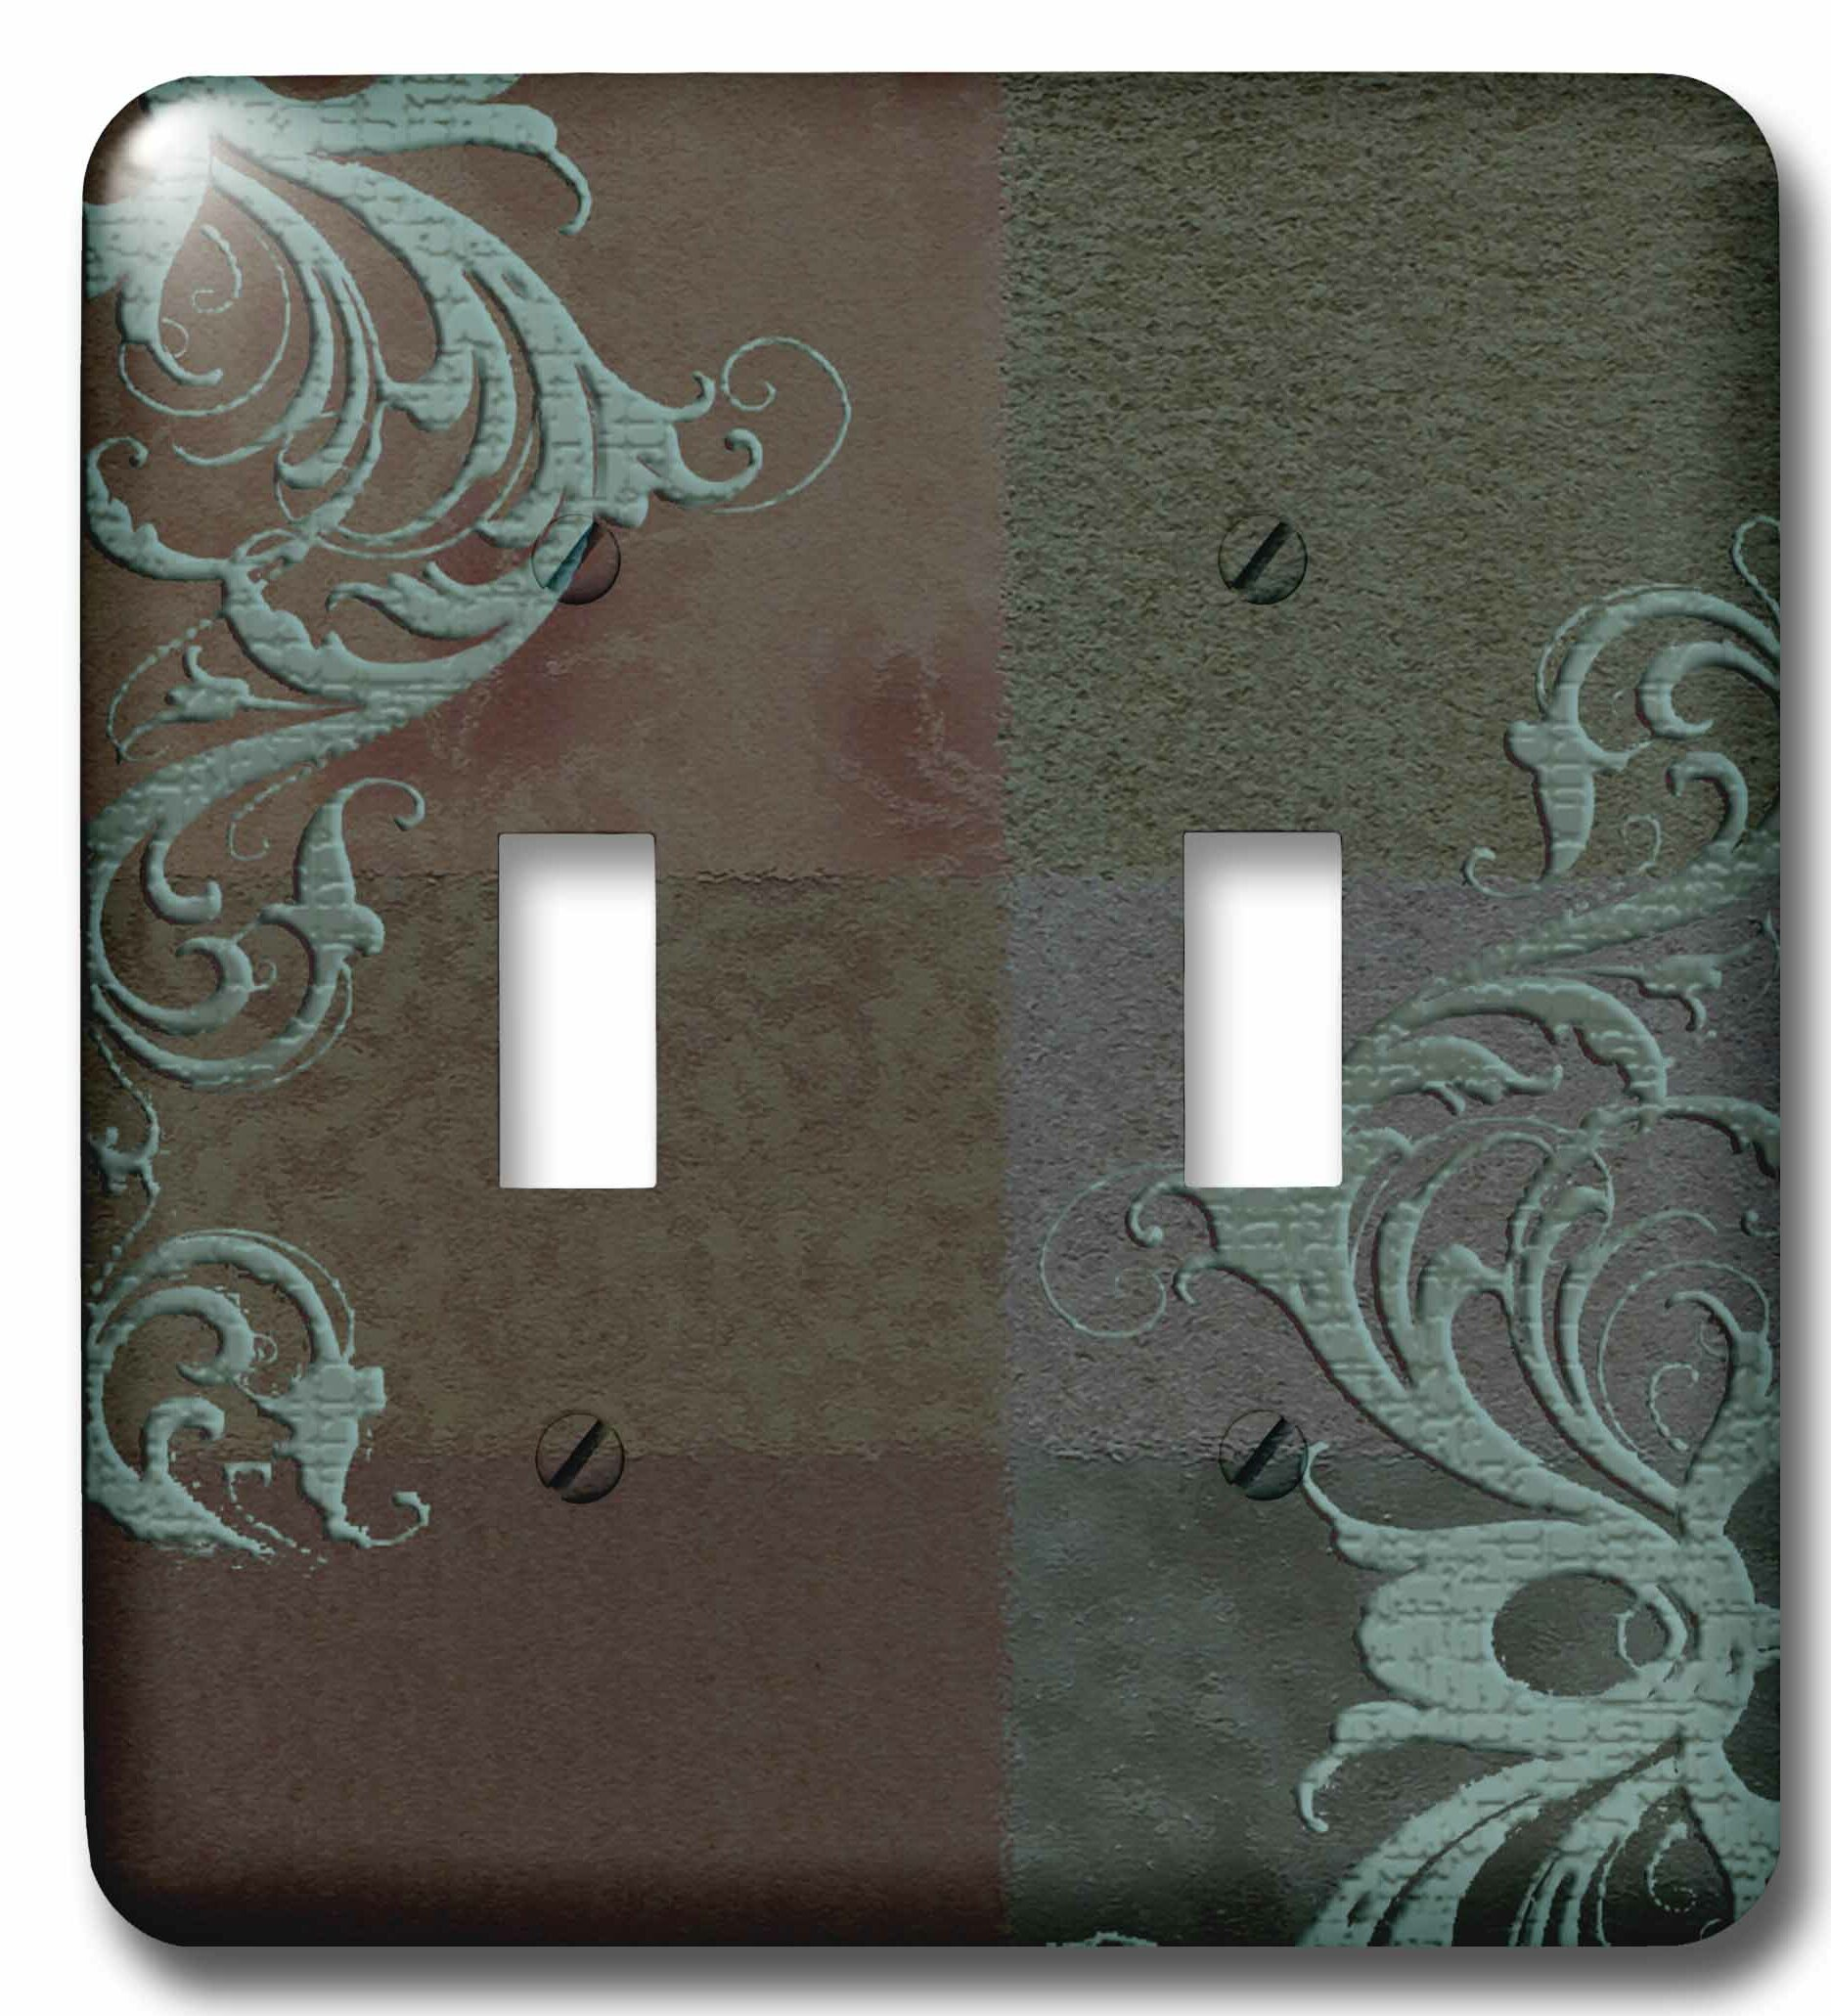 3drose Elegant Vines On Tones 2 Gang Toggle Light Switch Wall Plate Wayfair